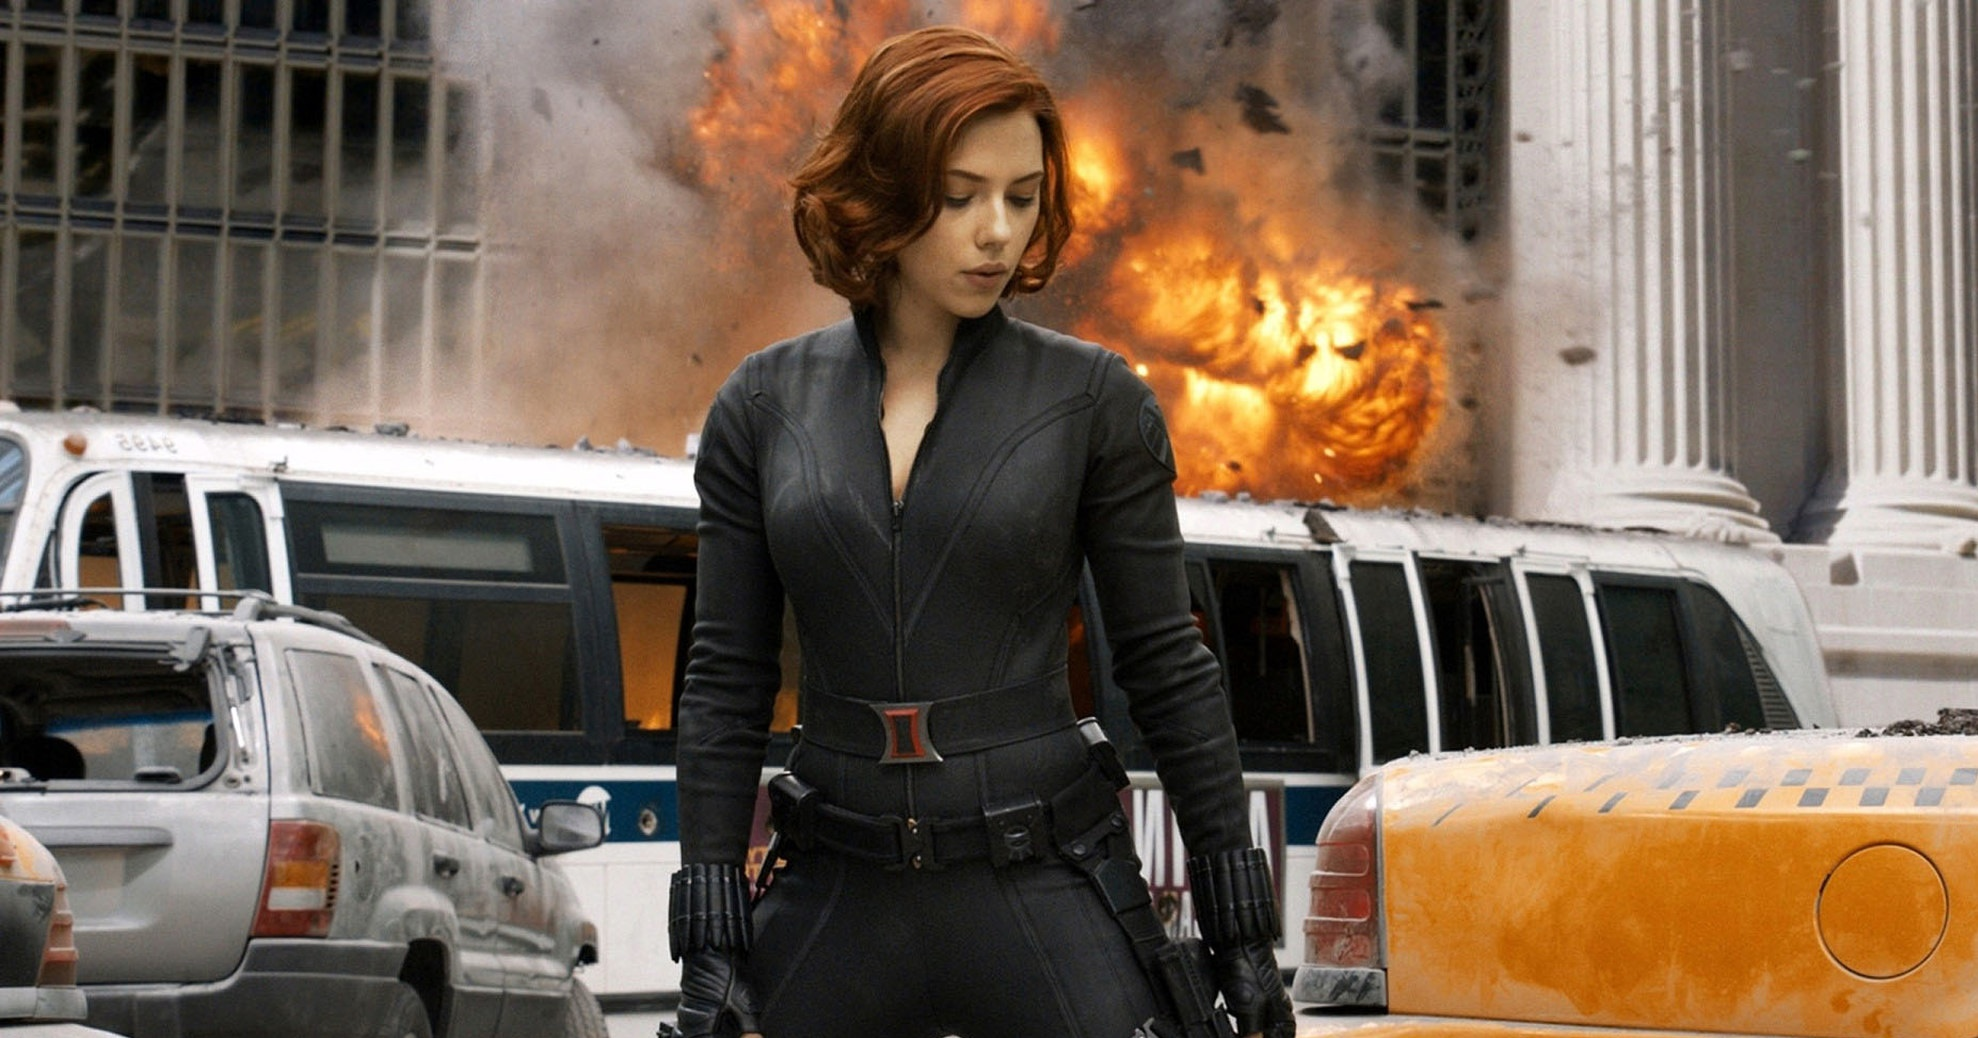 black-widow-avengers_easy-resize_com.jpg